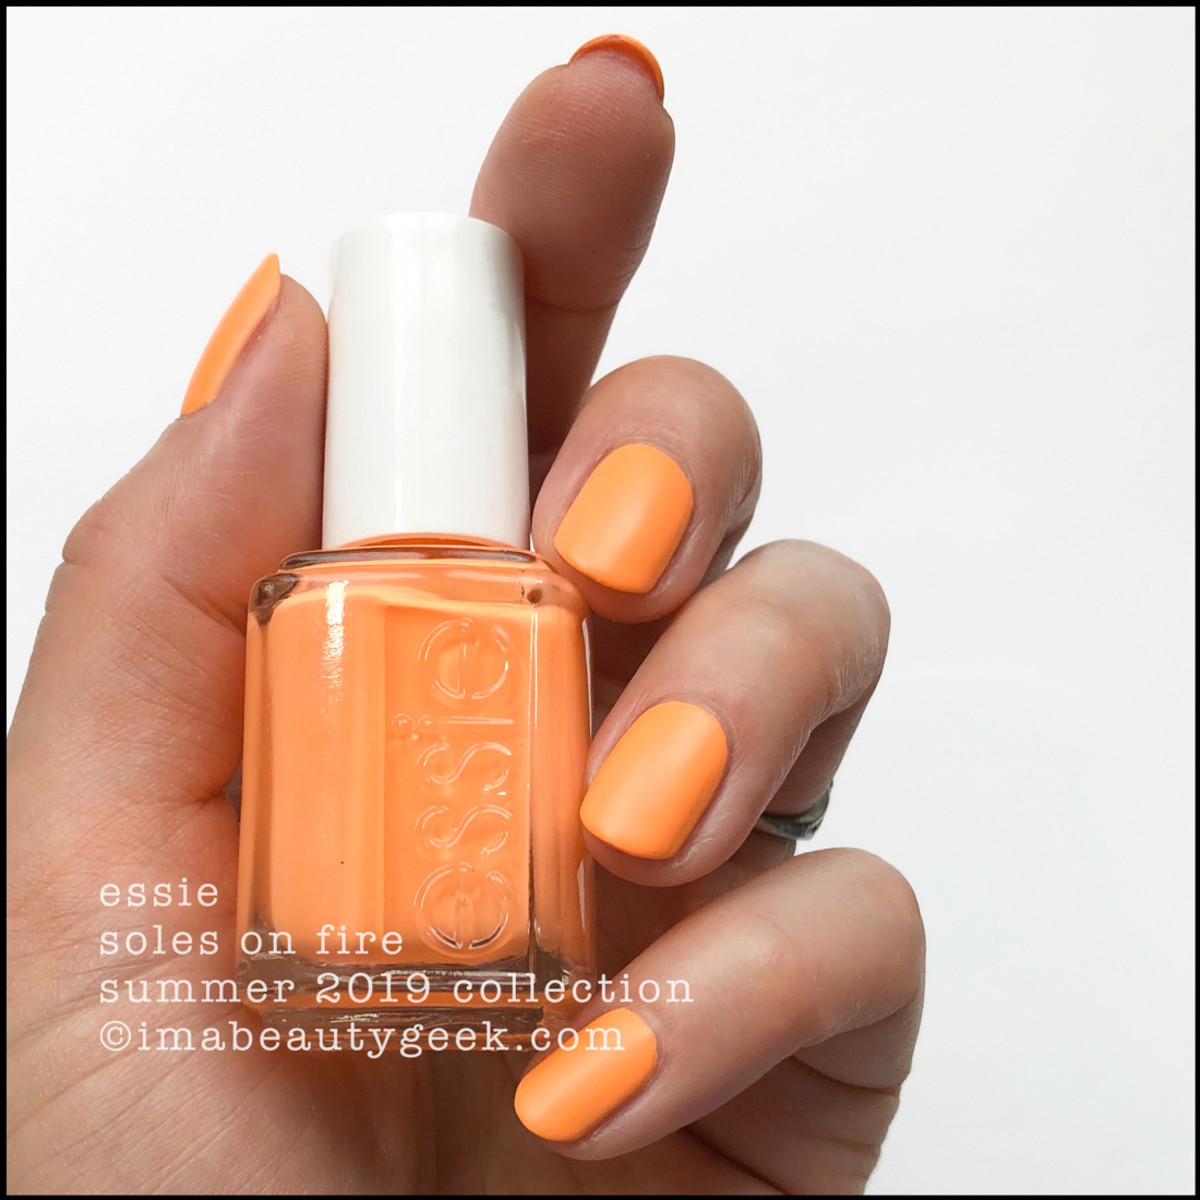 Essie Soles on Fire - Essie Summer Collection 2019 Neons